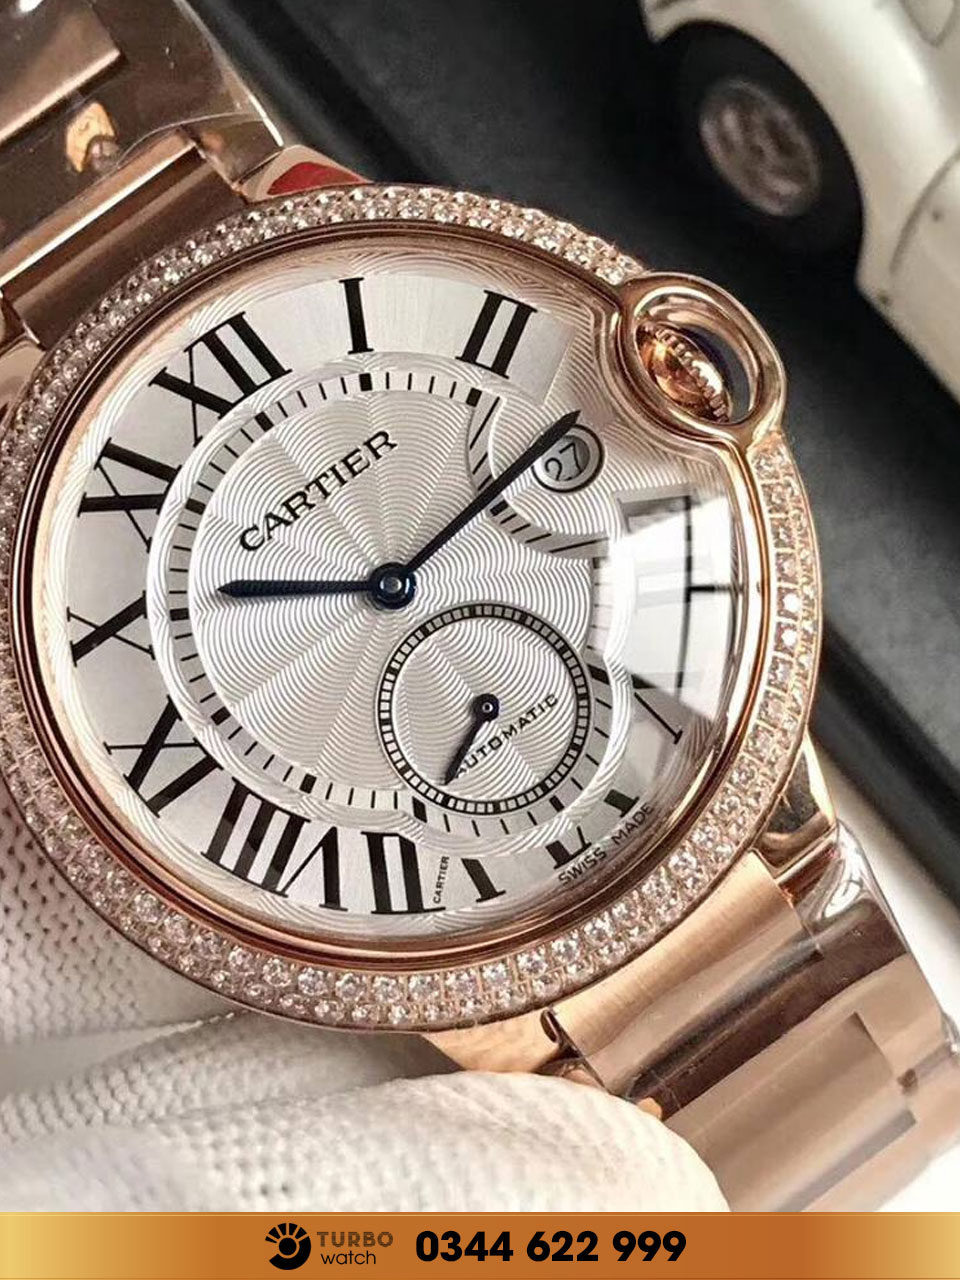 CATIER  Ballon Bleu 18k Rose Gold diamond fake 1-1 cao cấp